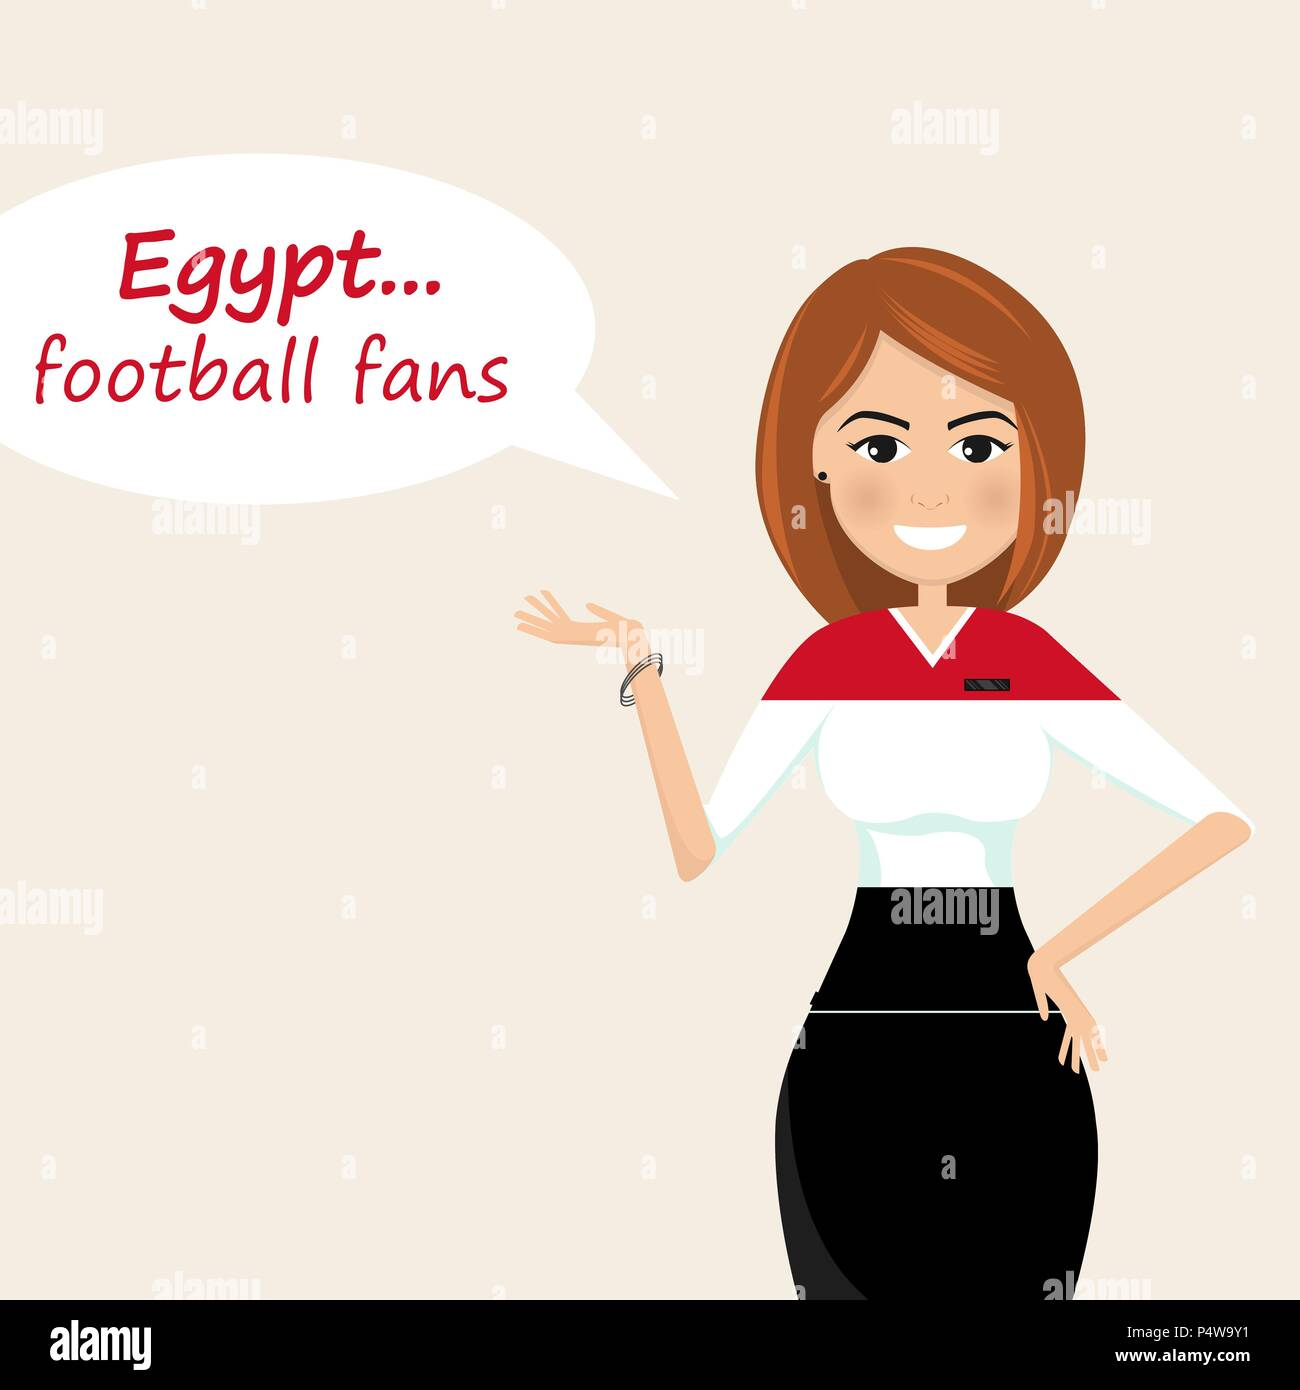 Egypt football fans.Cheerful soccer fans, sports images.Young woman,Pretty girl sign.Happy fans are cheering for their team.Vector illustration - Stock Vector